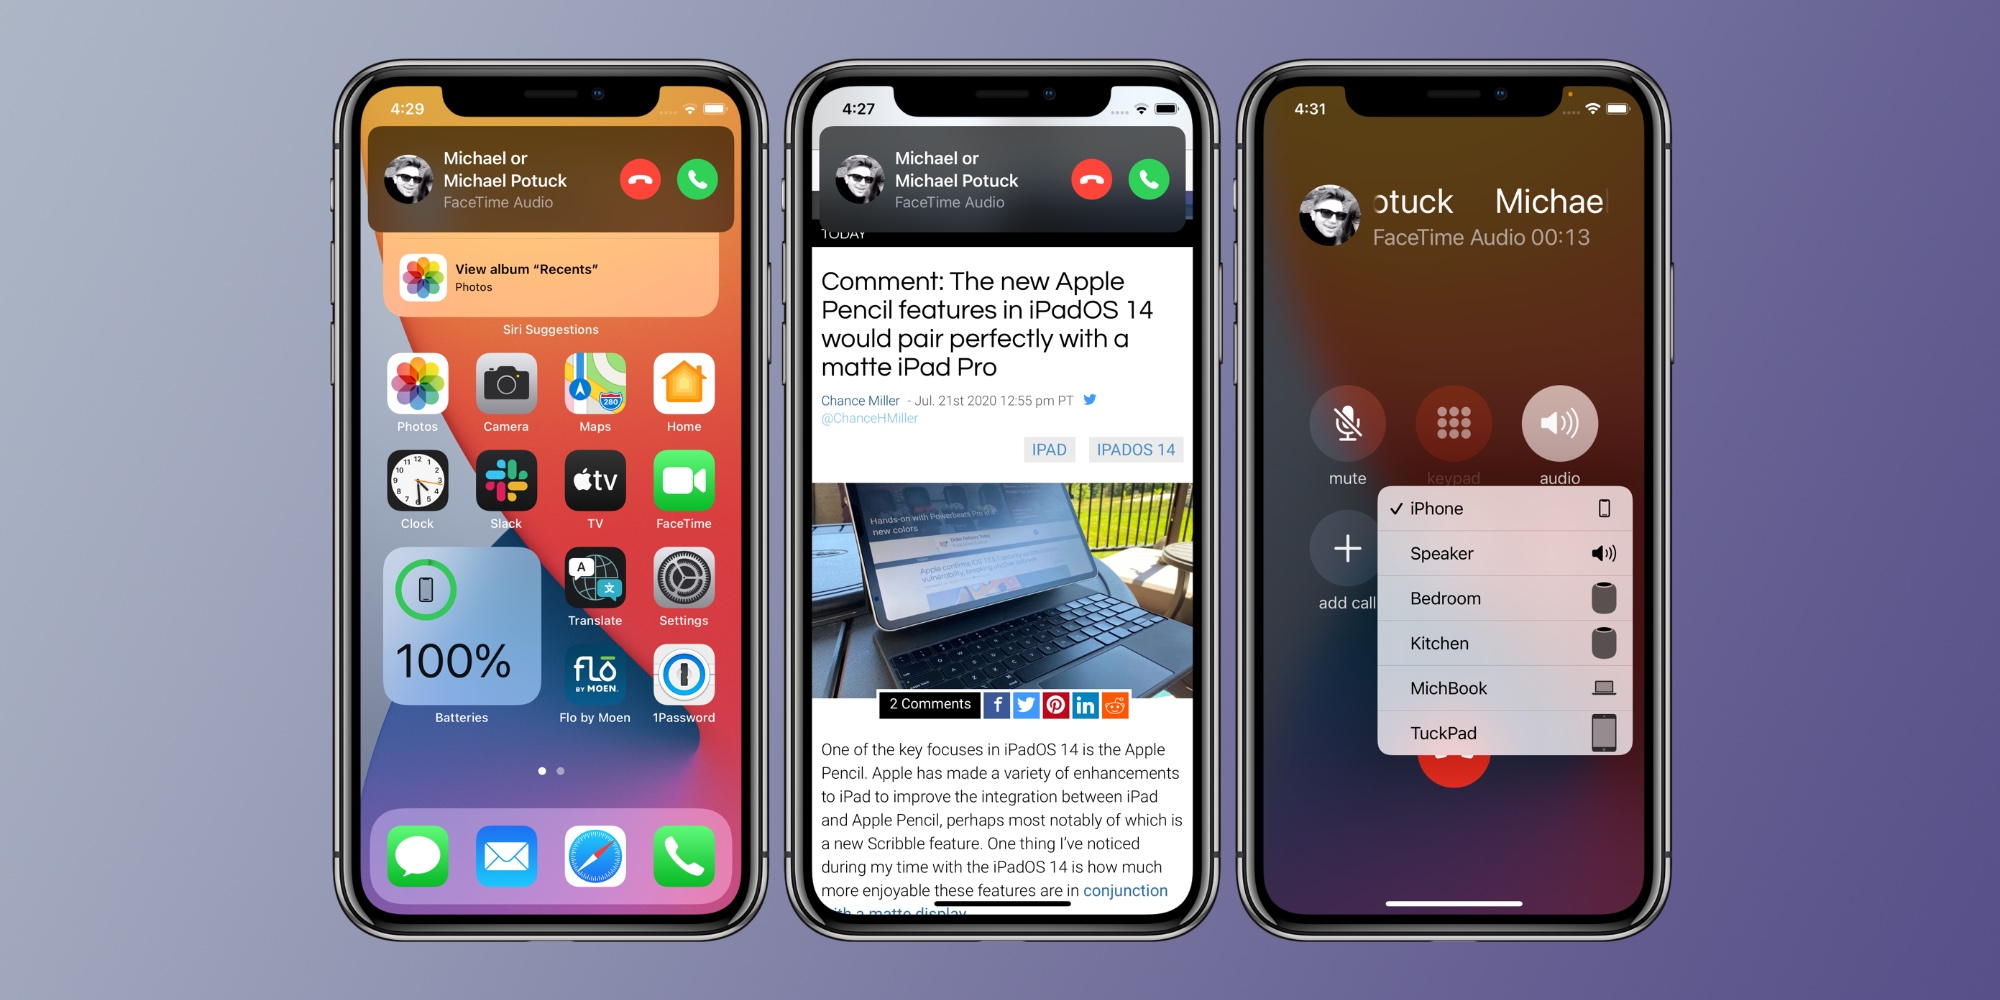 How to use iPhone compact call interface iOS 14